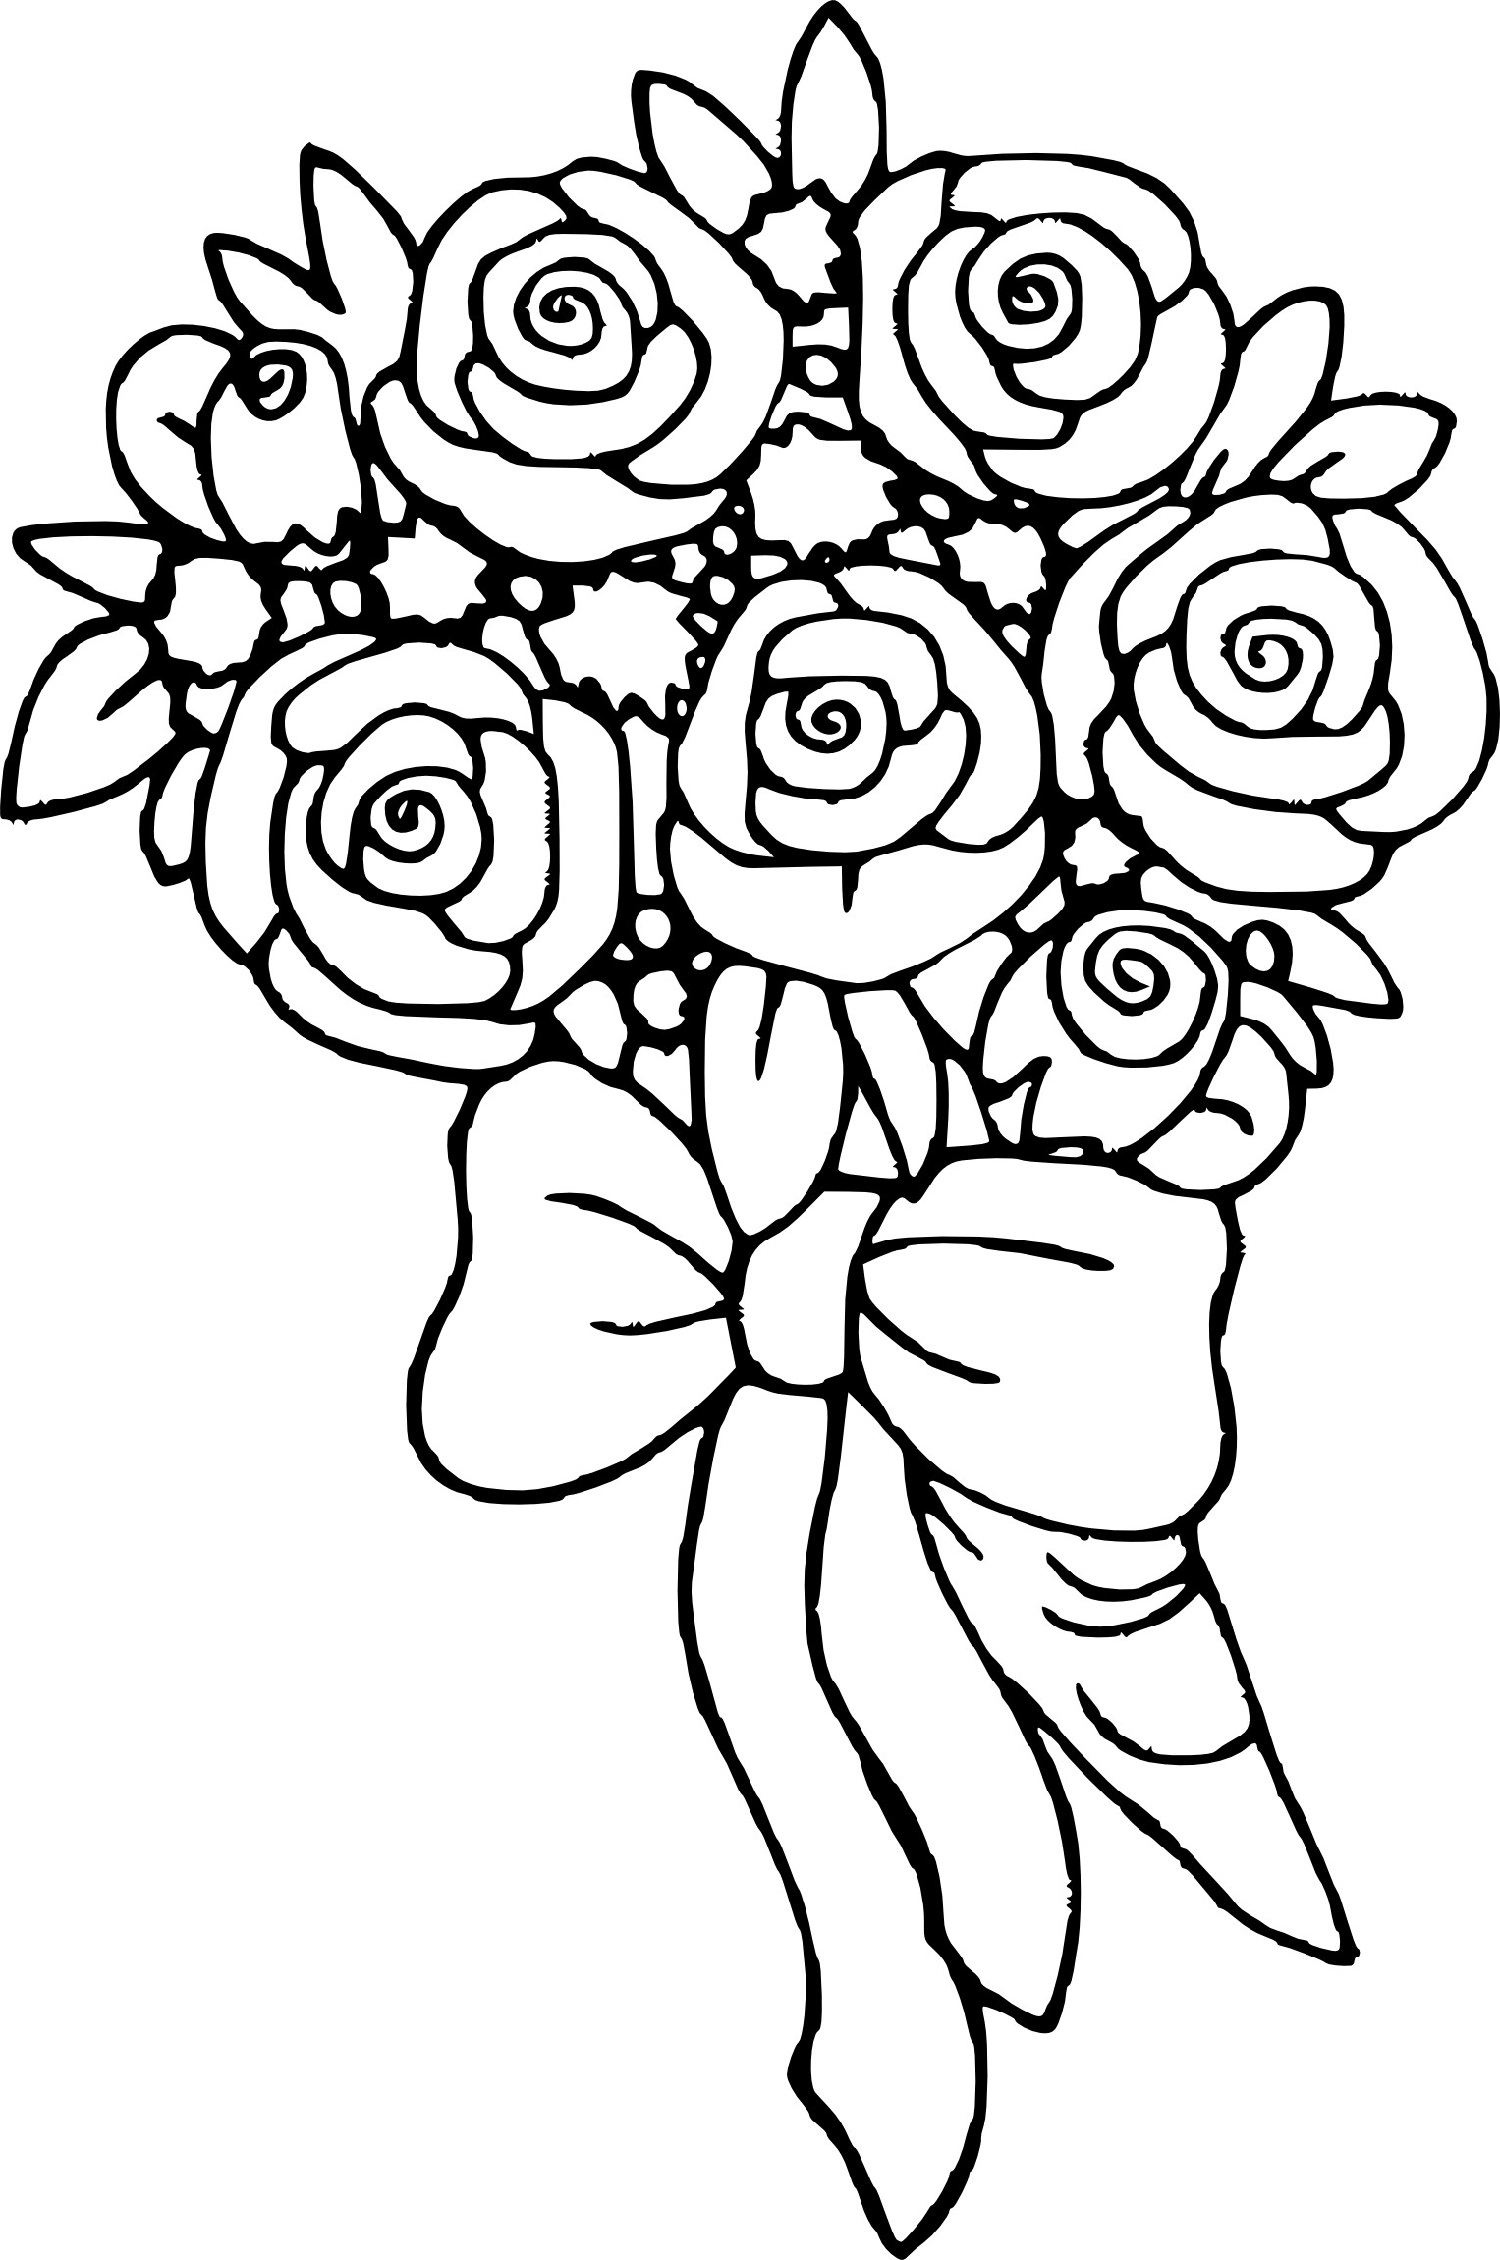 rose flower coloring pages rose coloring pages realistic 101 coloring flower rose pages coloring